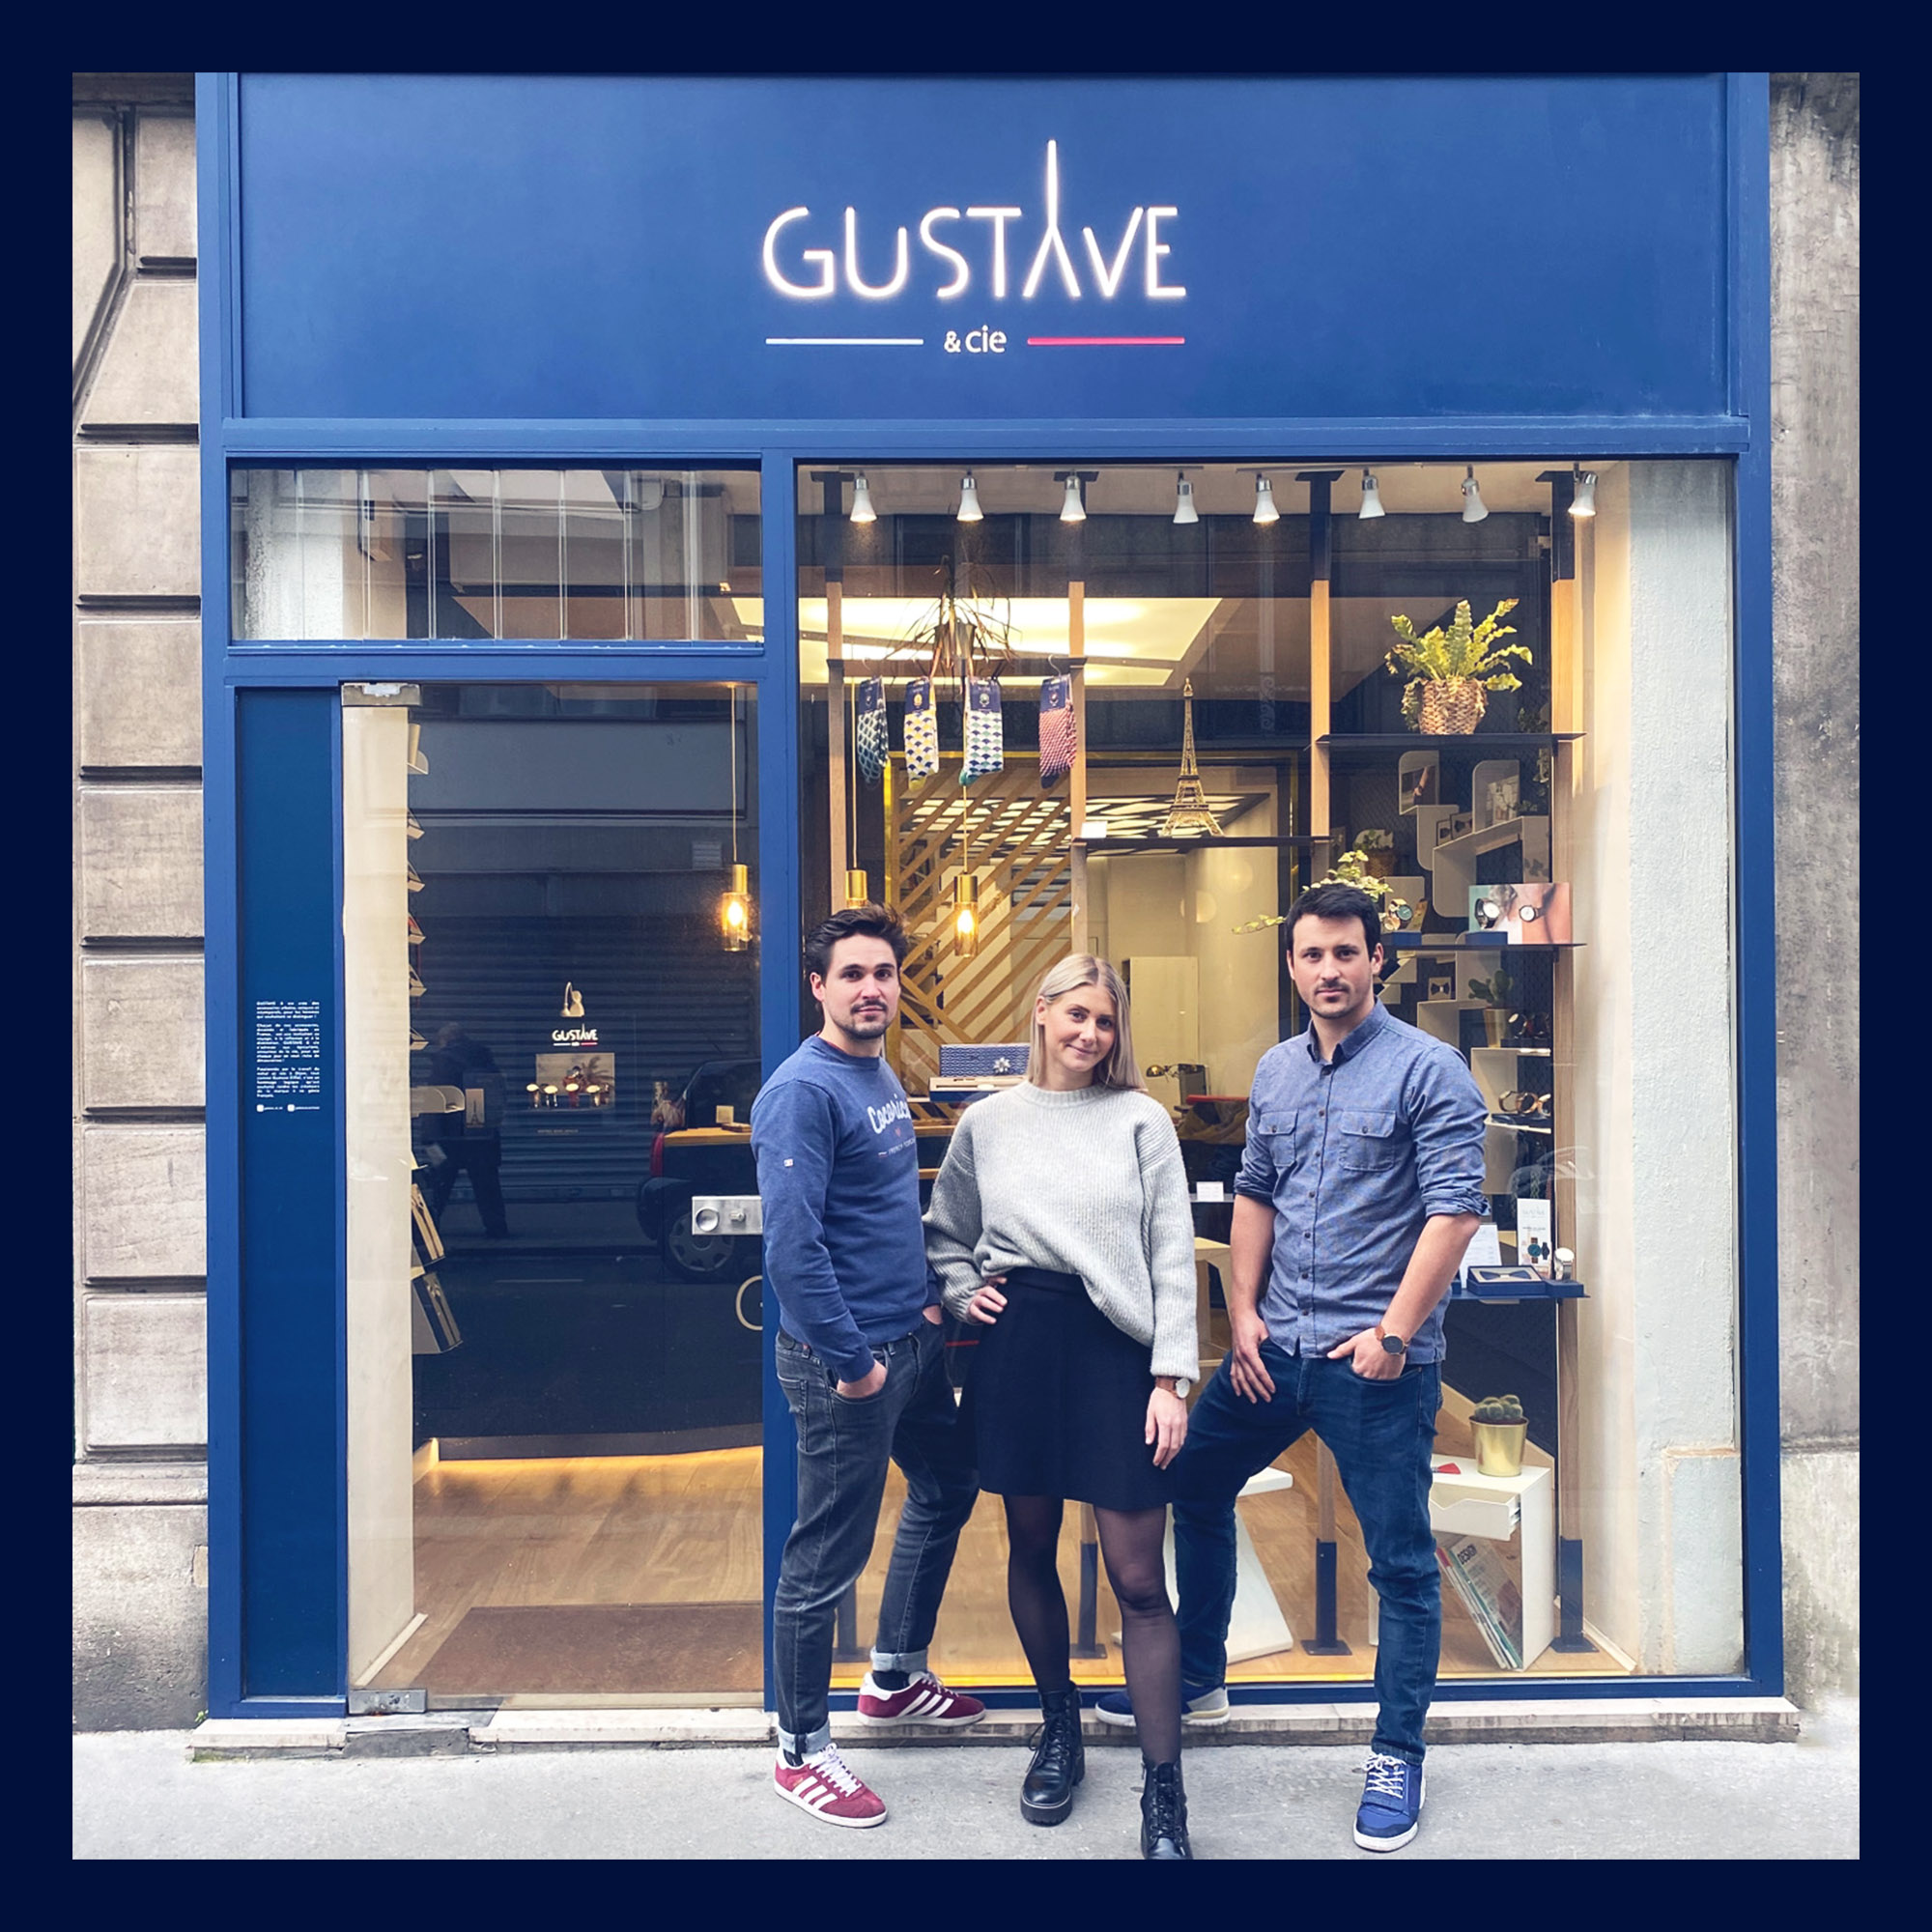 , GUSTAVE et cie & # 8211; 24h 12h watches and fashion accessories Made in France, GUSTAVE et cie - Maison Horlogère Française, GUSTAVE et cie - Maison Horlogère Française